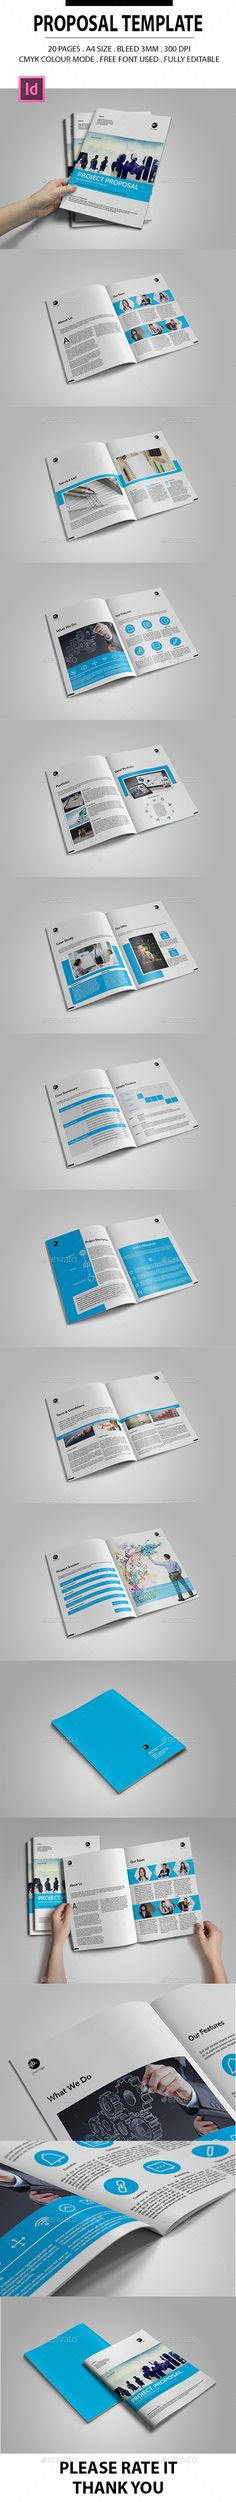 Three Rings Project Proposal Template Proposal templates - proposal template